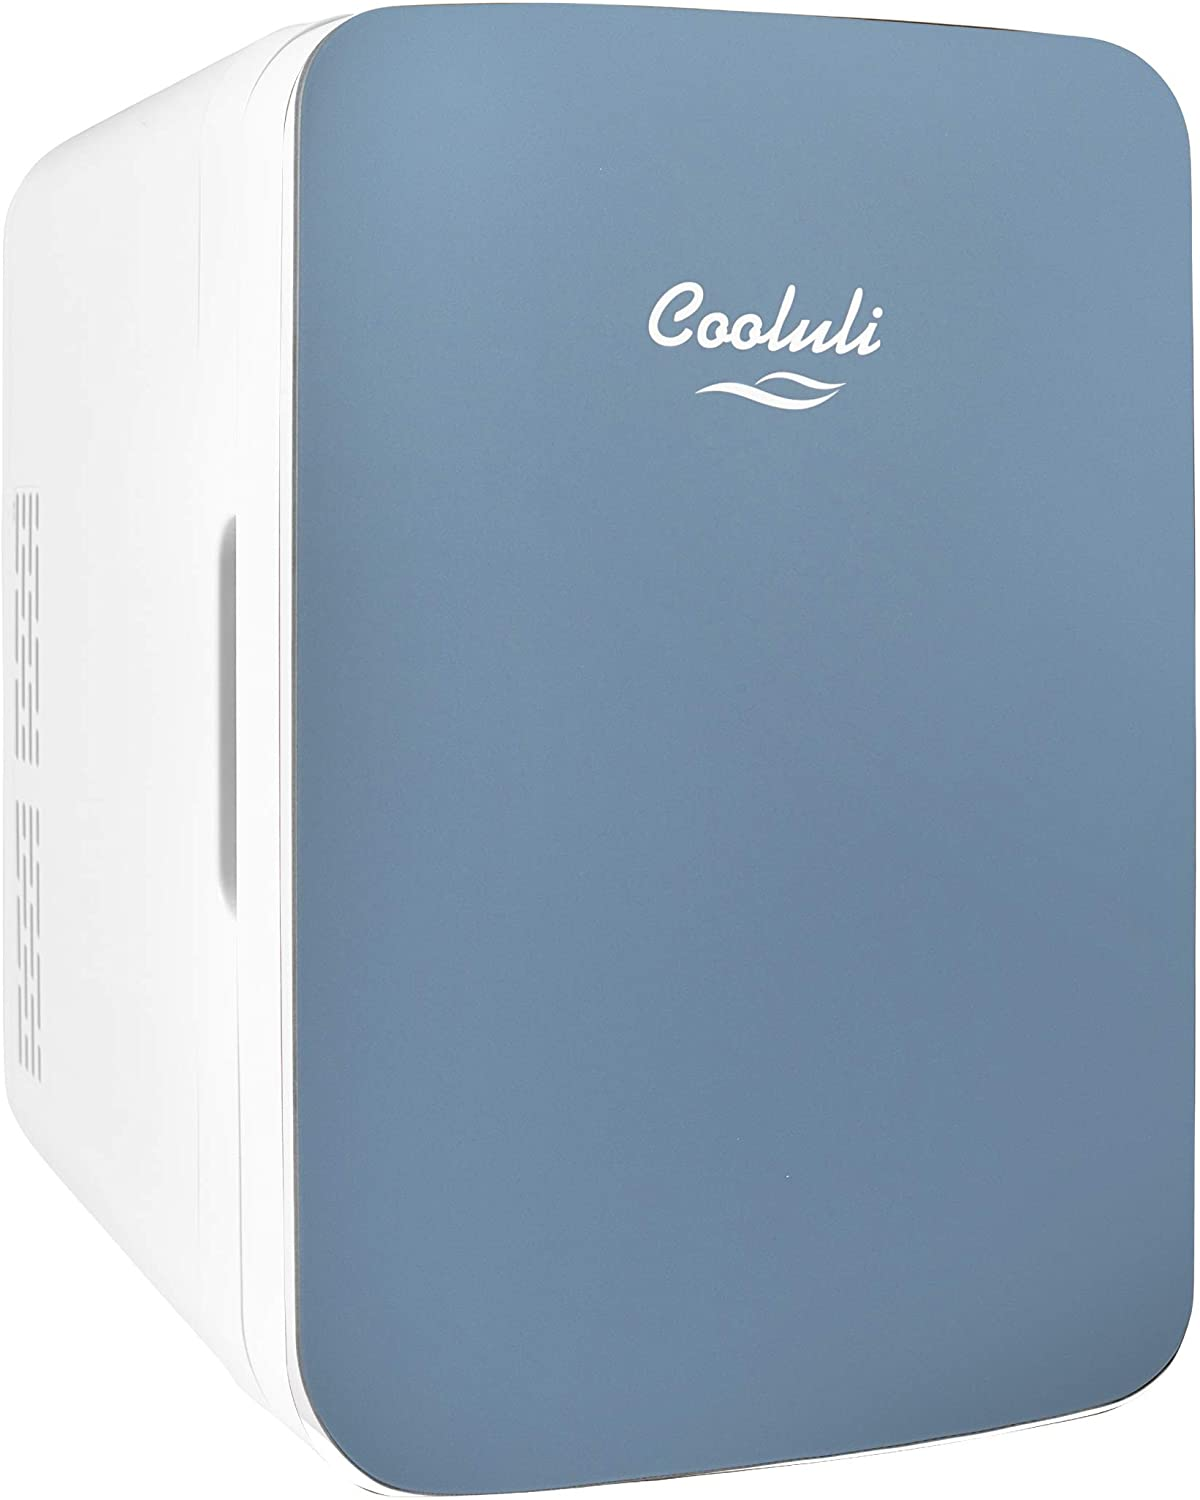 Cooluli Infinity Blue 10 Liter Compact Portable Cooler Warmer Mini Fridge for Bedroom, Office, Dorm, Car - Great for Skincare & Cosmetics (110-240V/12V)